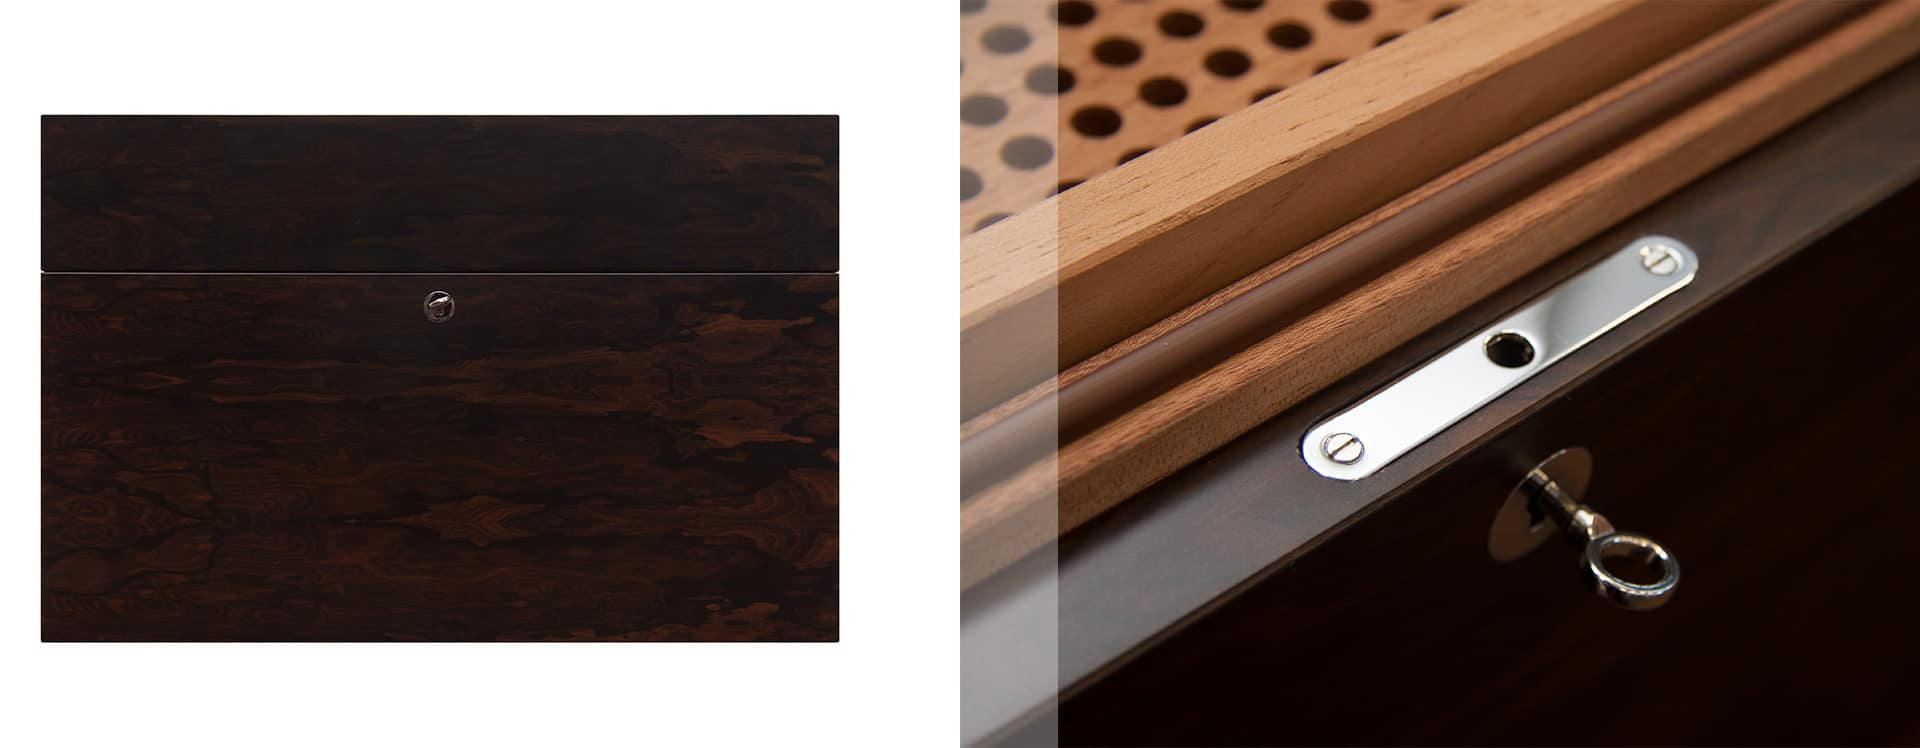 Gerber desktop humidor - cladded in luxury Ziricote veneer